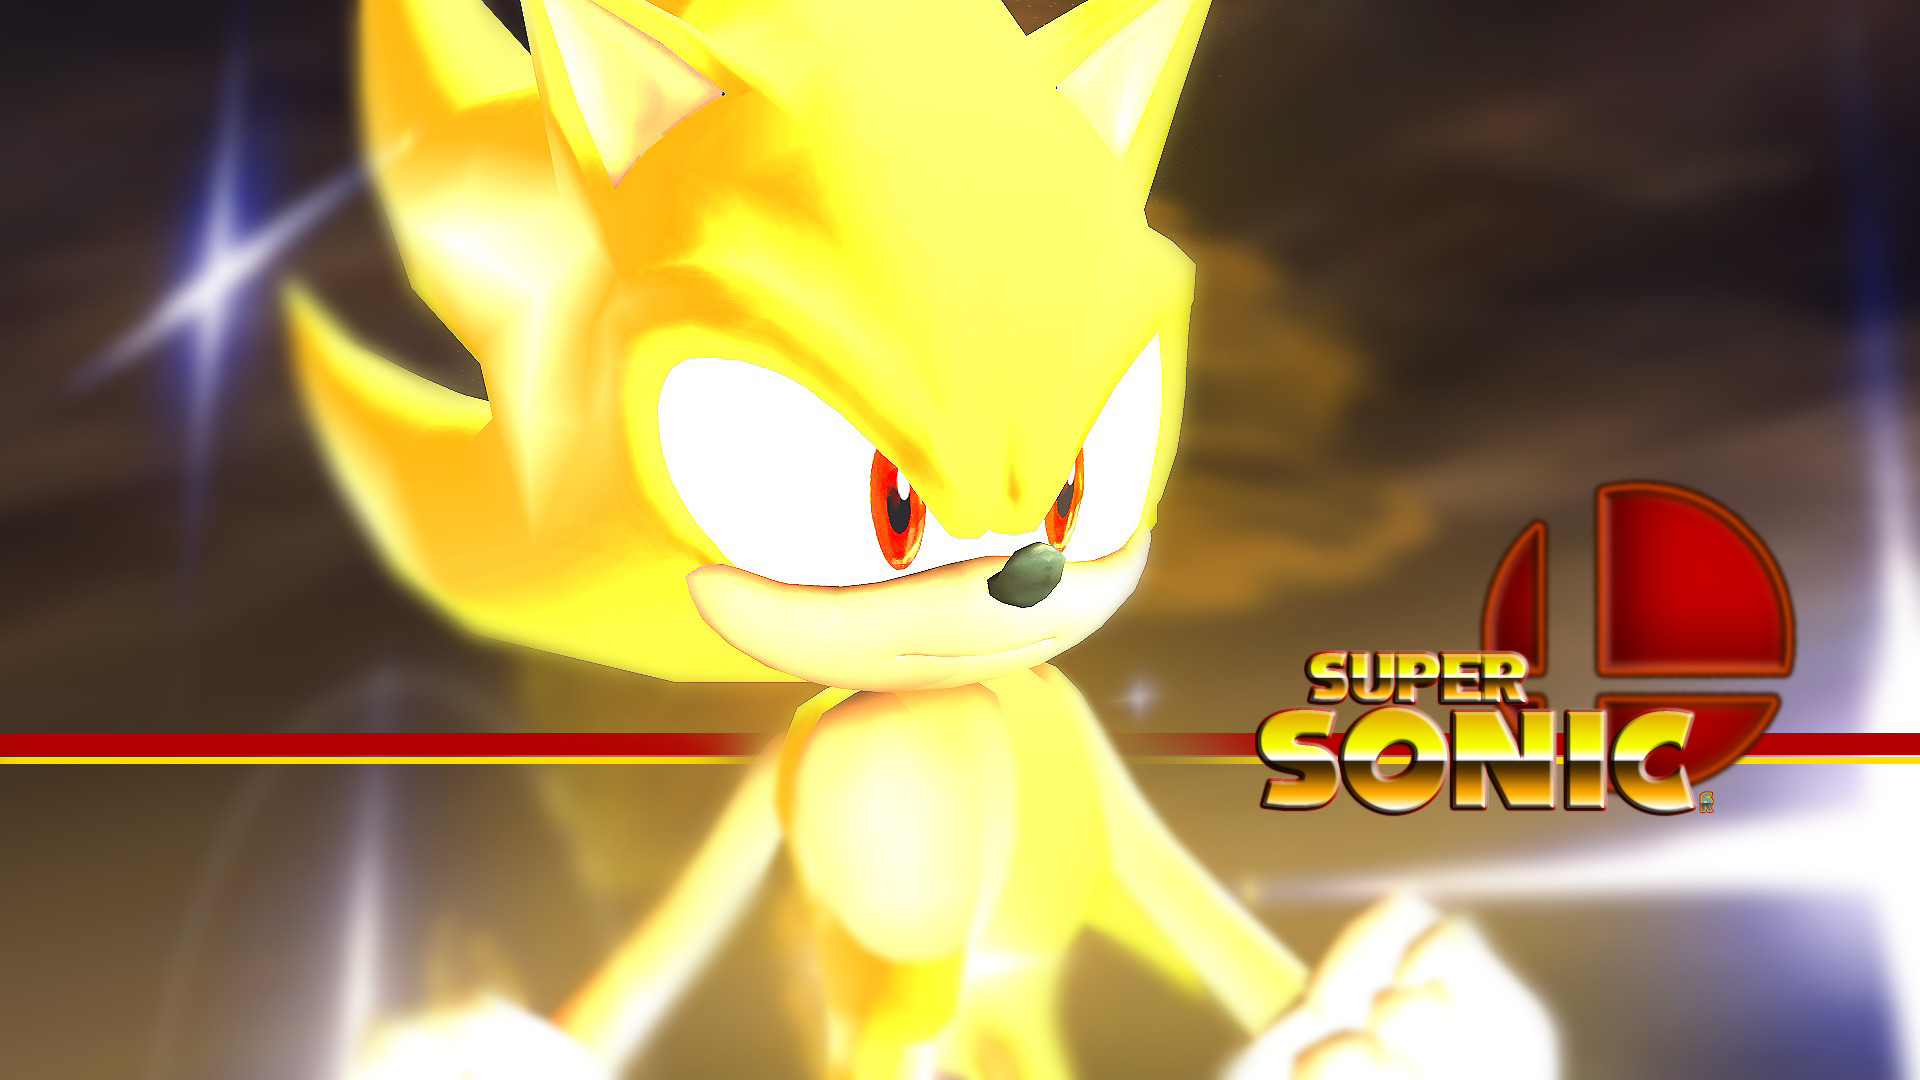 Related Wallpapers From Super Sonic 1920x1200